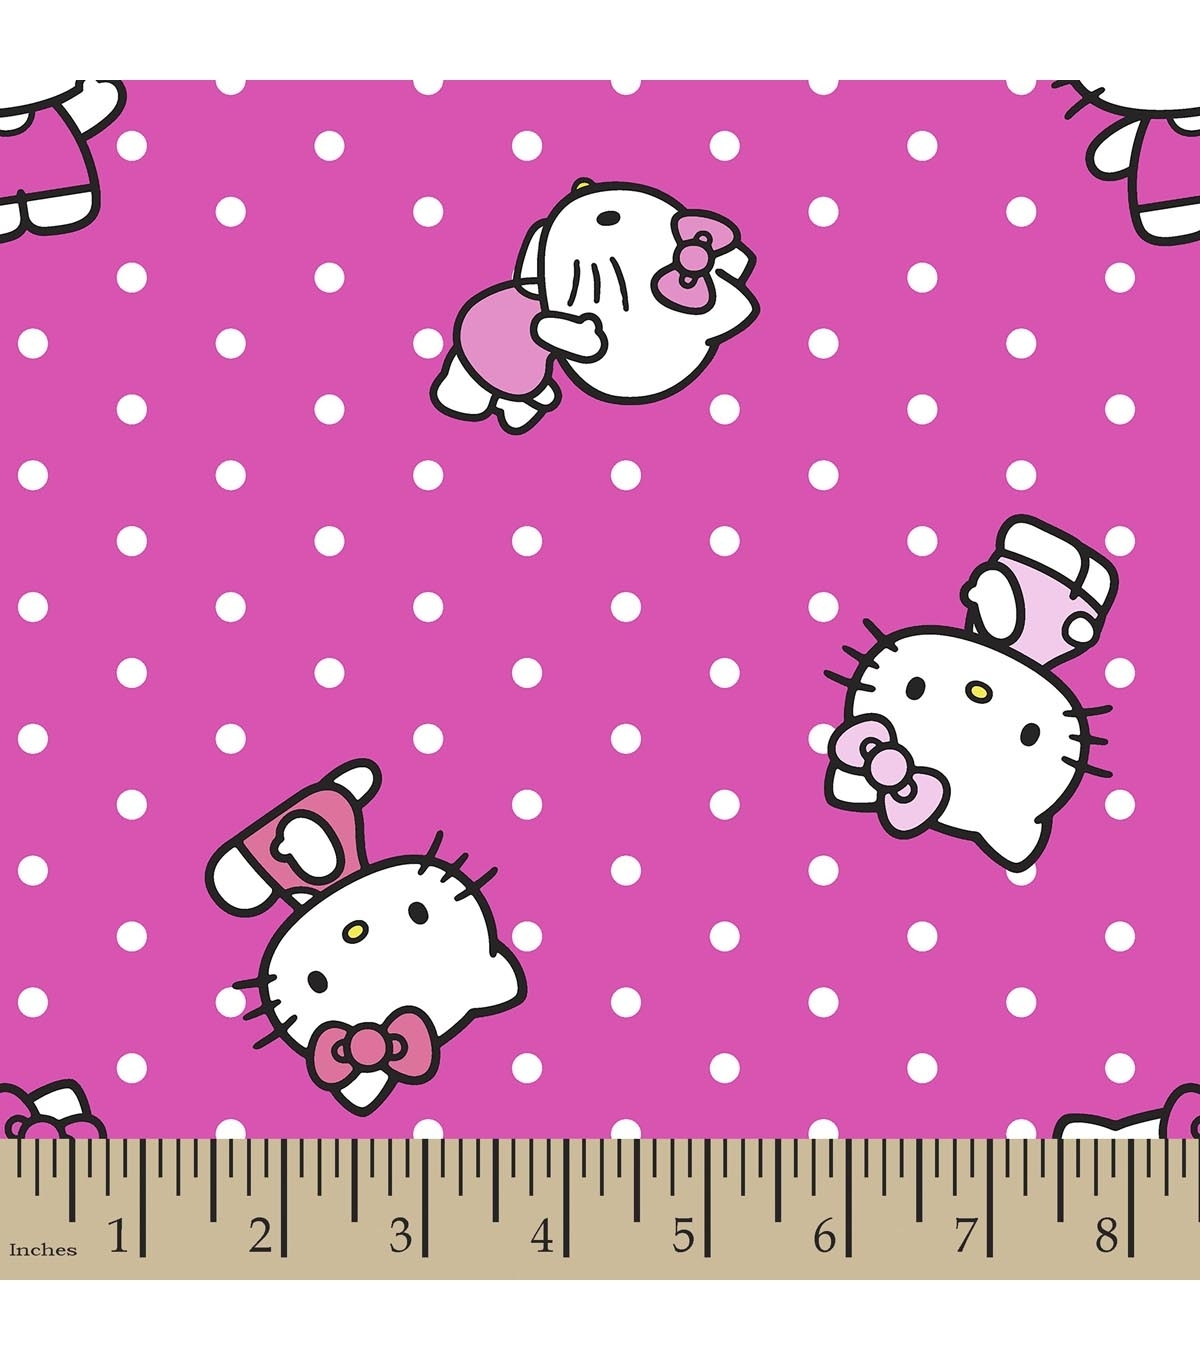 Sanrio Hello Kitty Print Fabric Dots | Joann In Best And Newest Hello Kitty Canvas Wall Art (View 11 of 15)